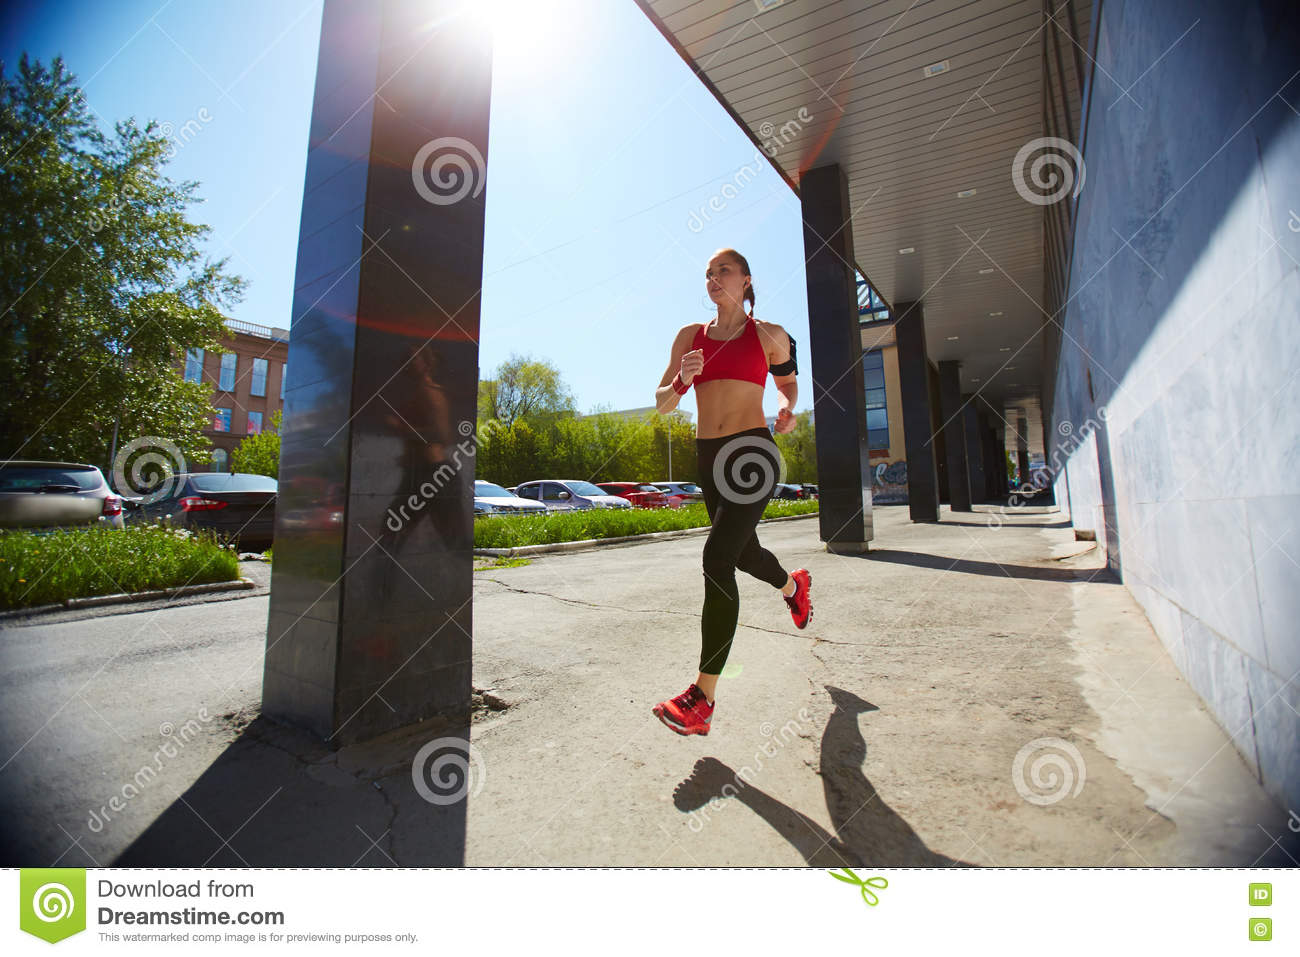 Urban runner for android apk download.